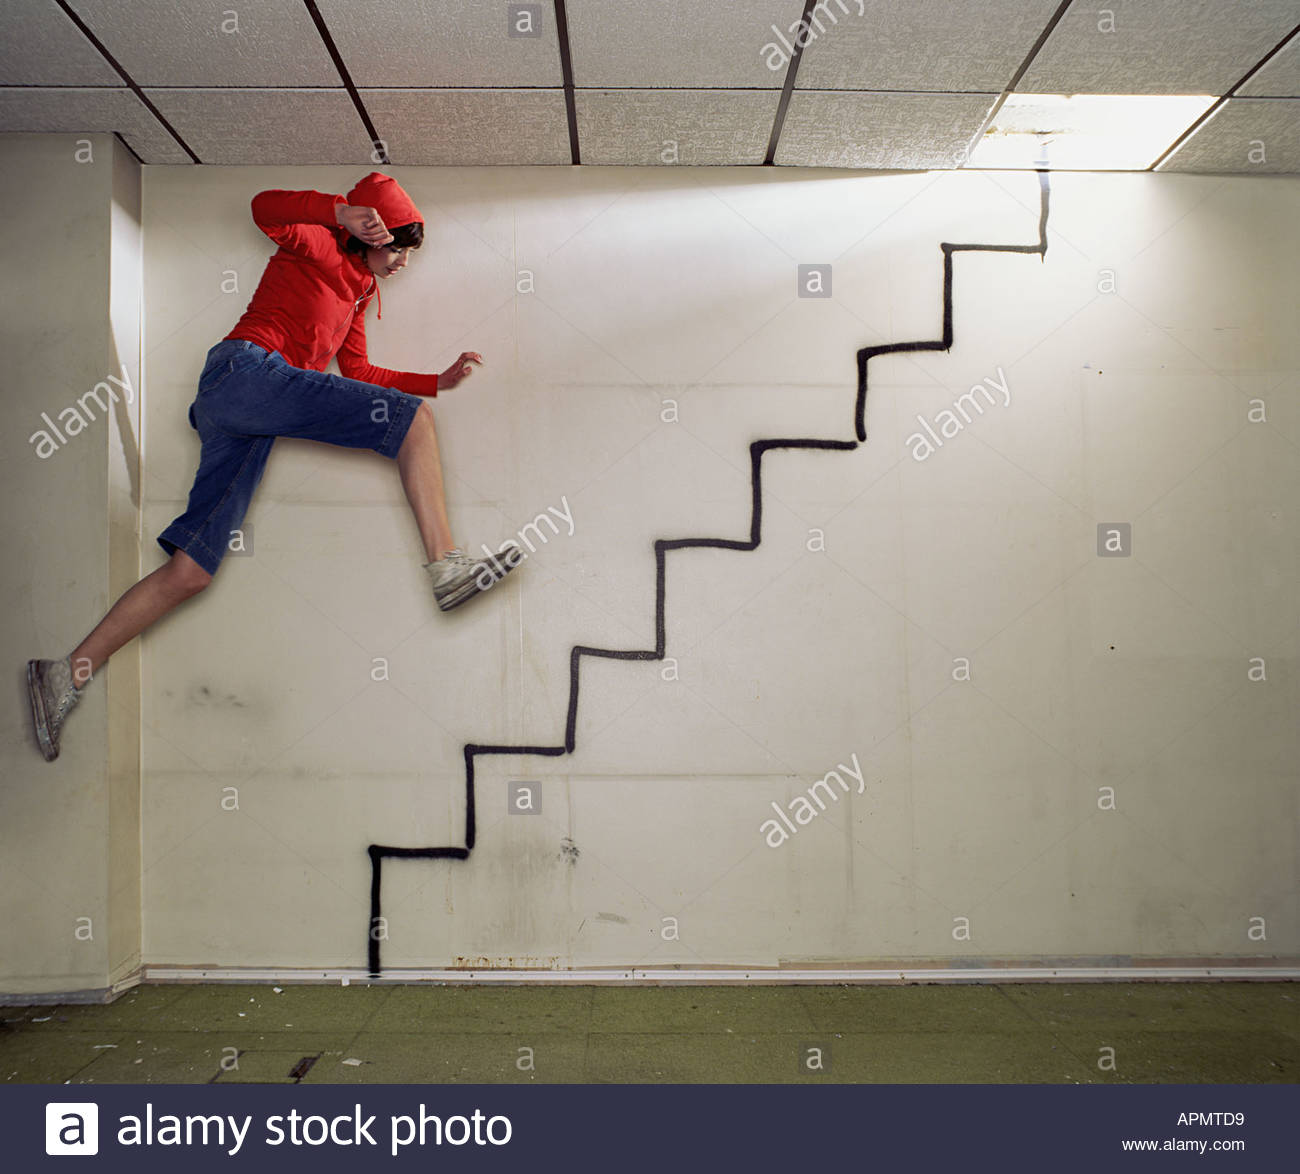 Woman jumping on spray painted stairway - Stock Image